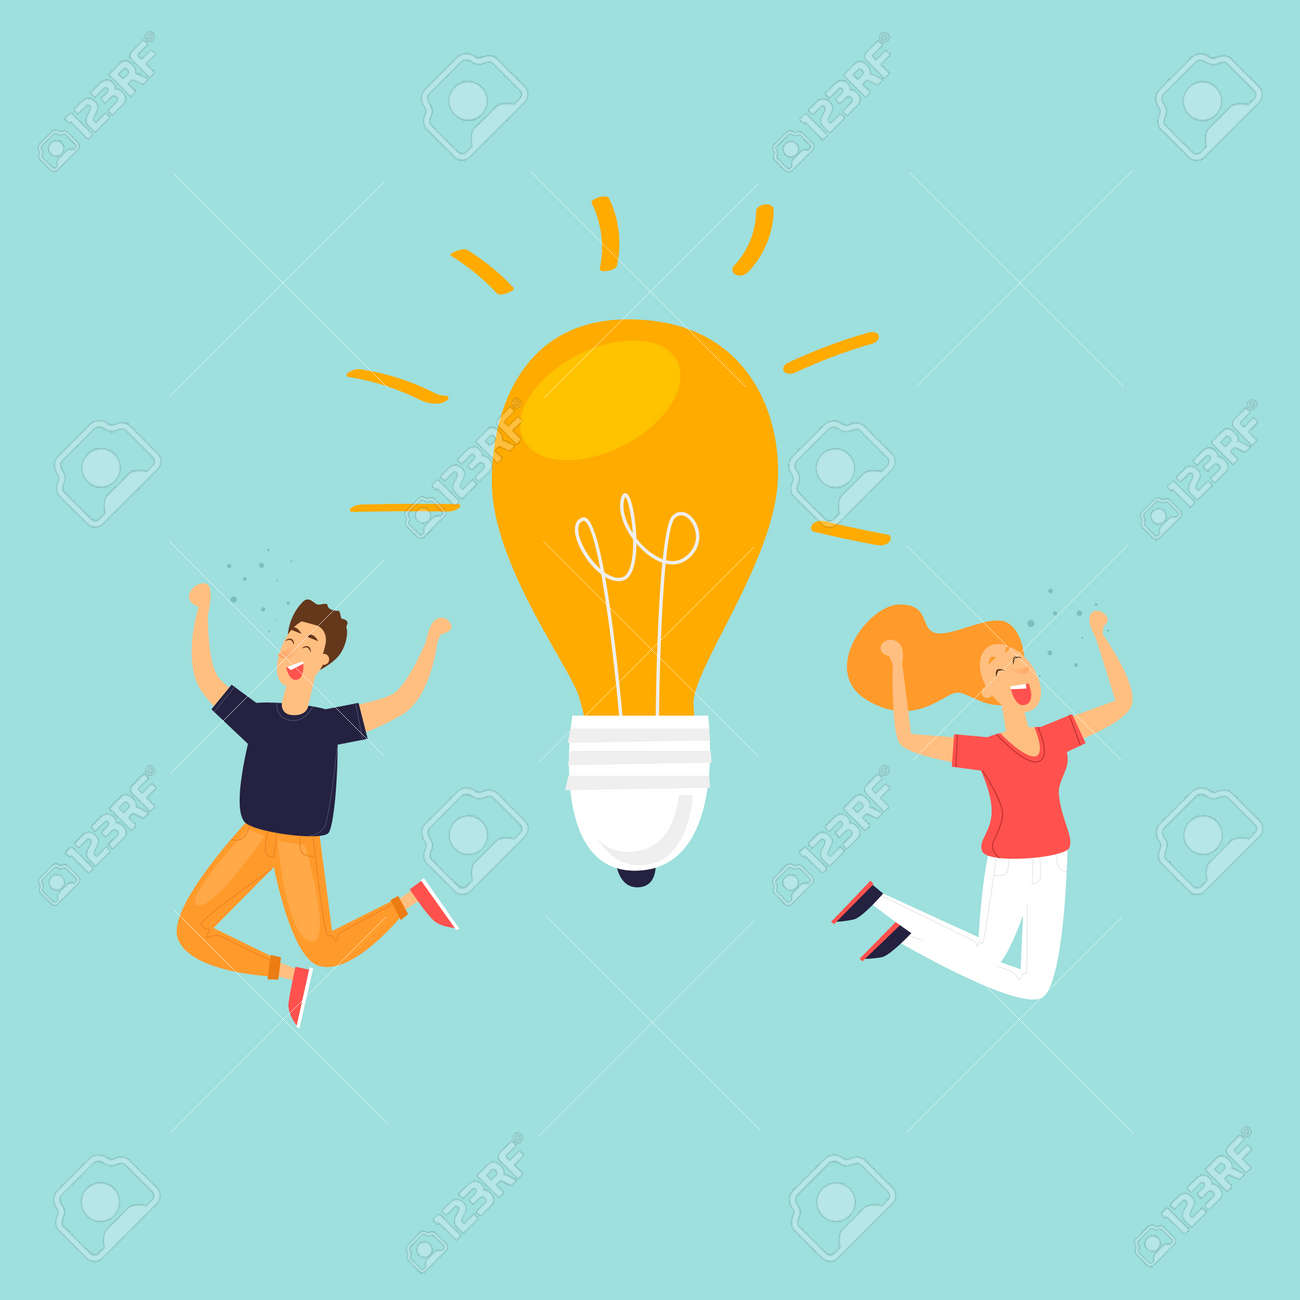 idea success in business happy people flat design vector illustration royalty free cliparts vectors and stock illustration image 97997494 idea success in business happy people flat design vector illustration